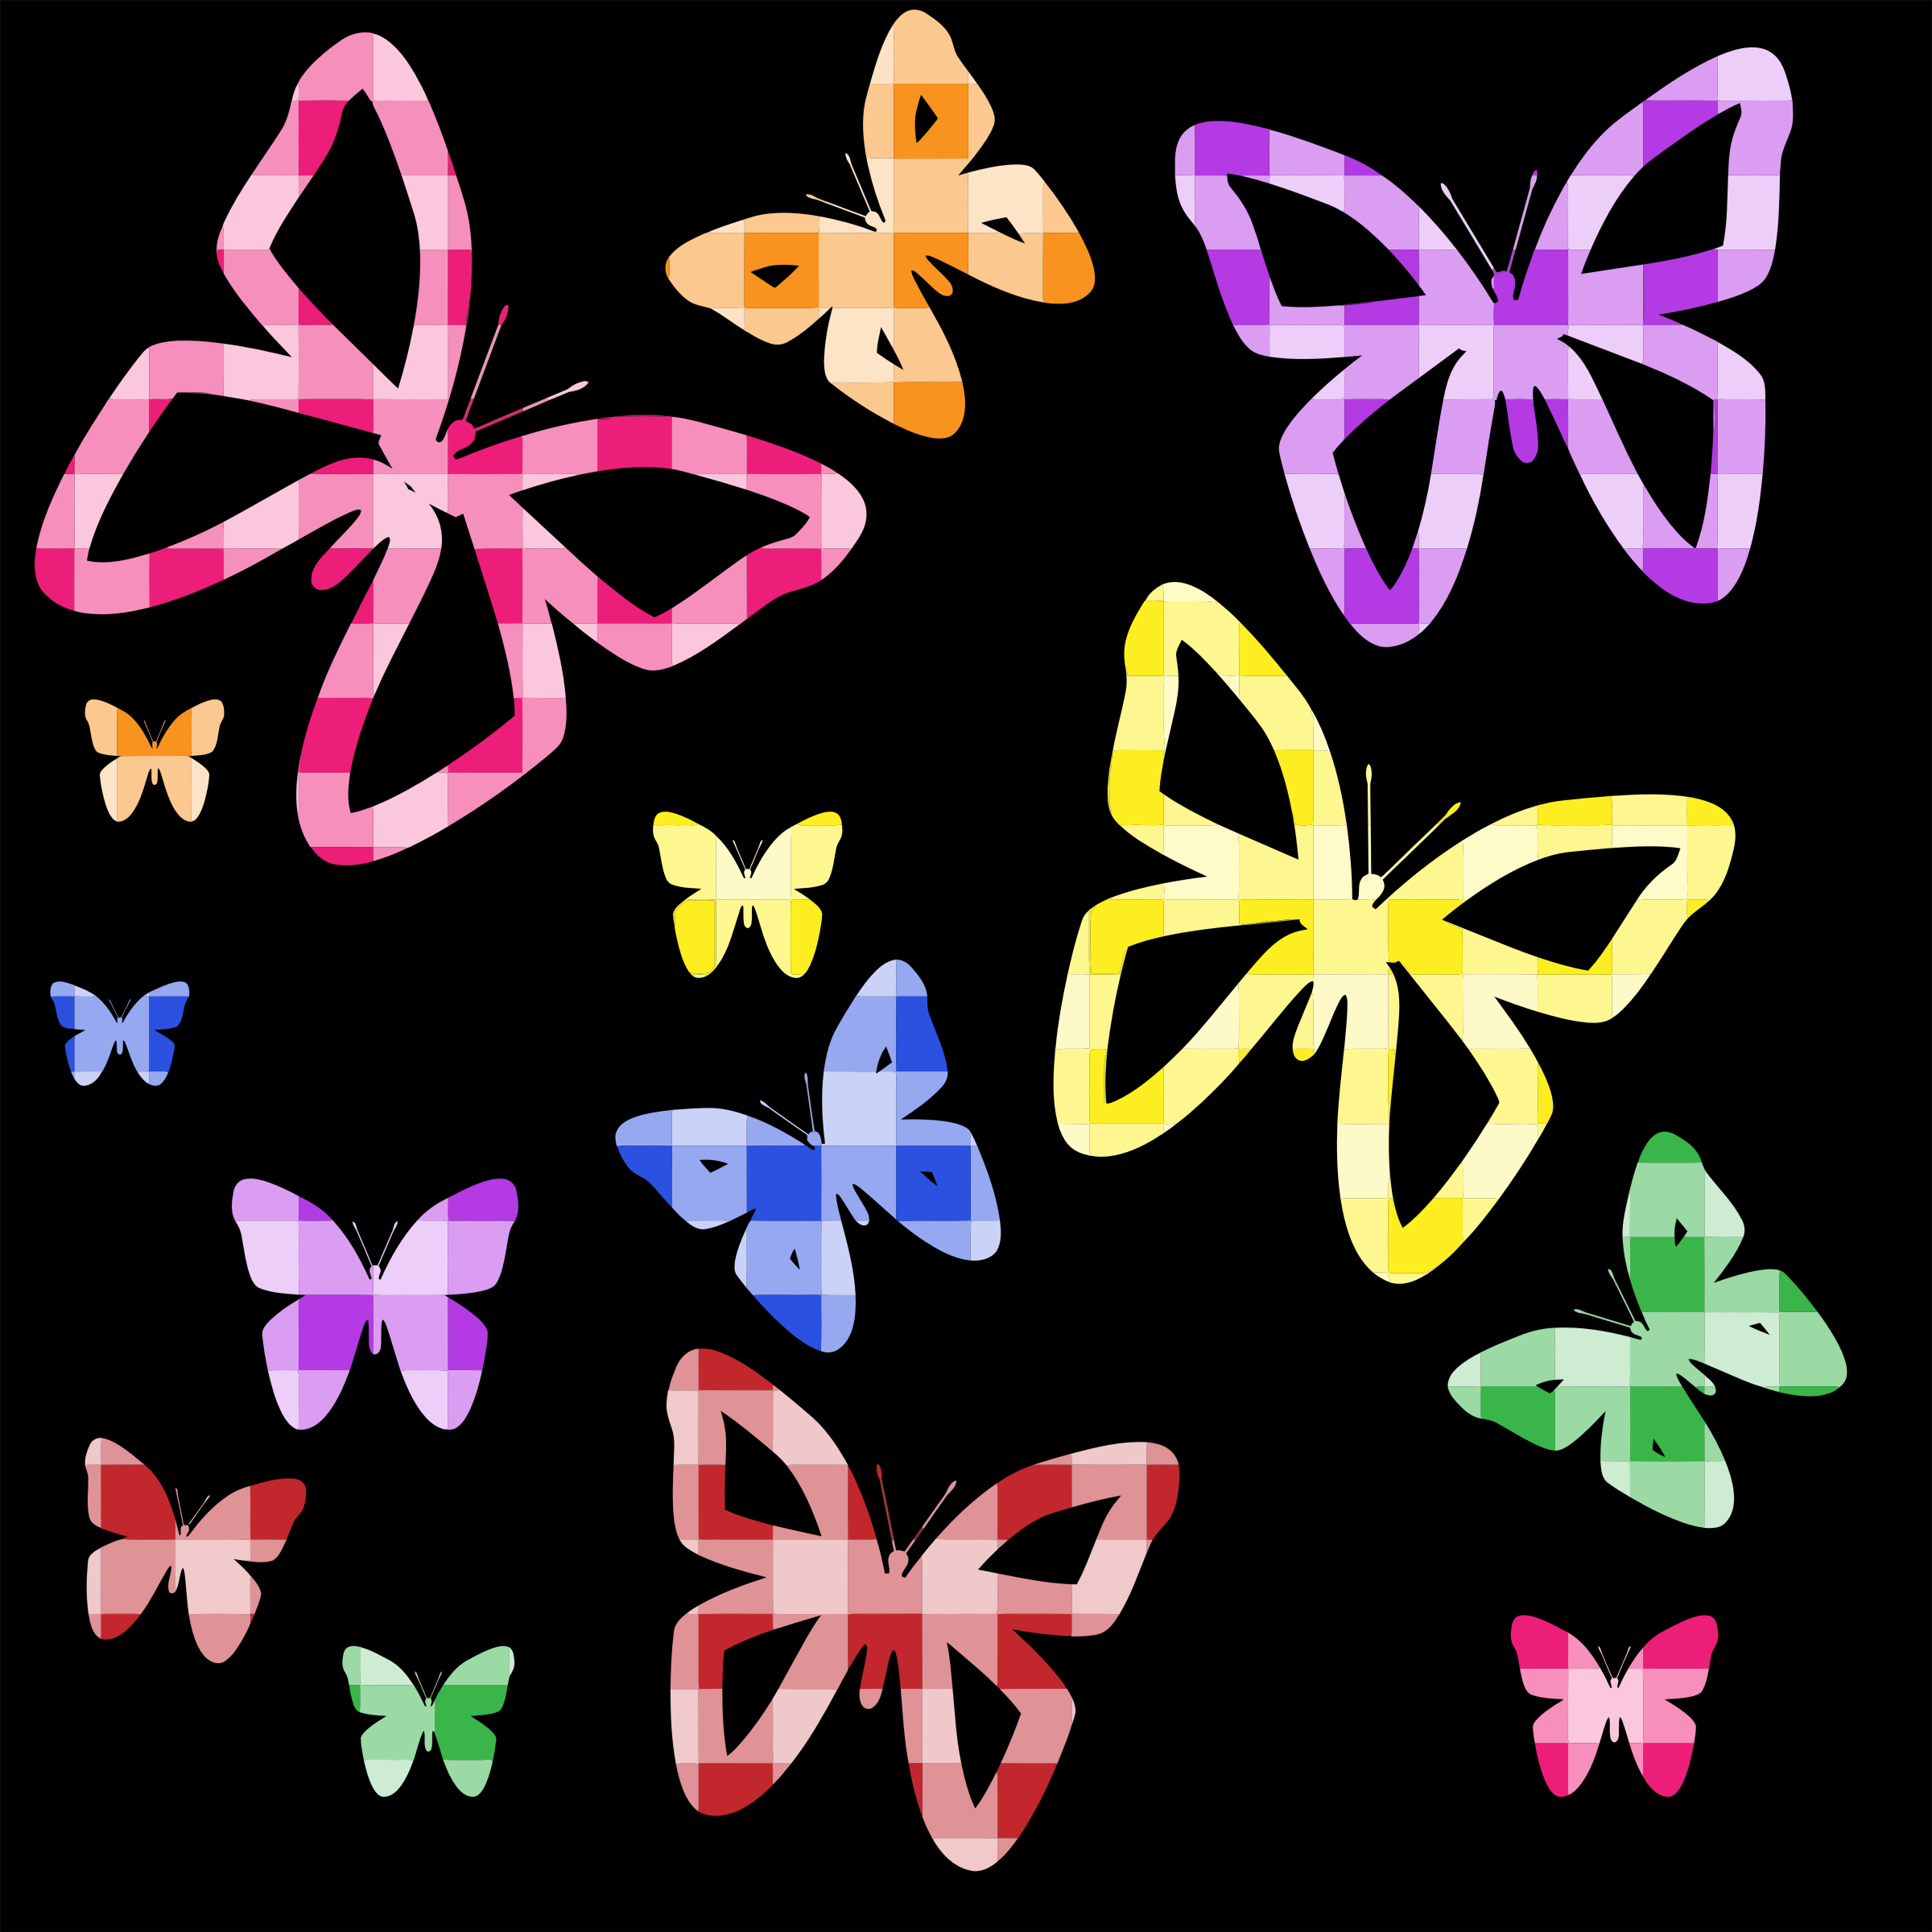 Colorful Butterflies Wallpaper by GDJ